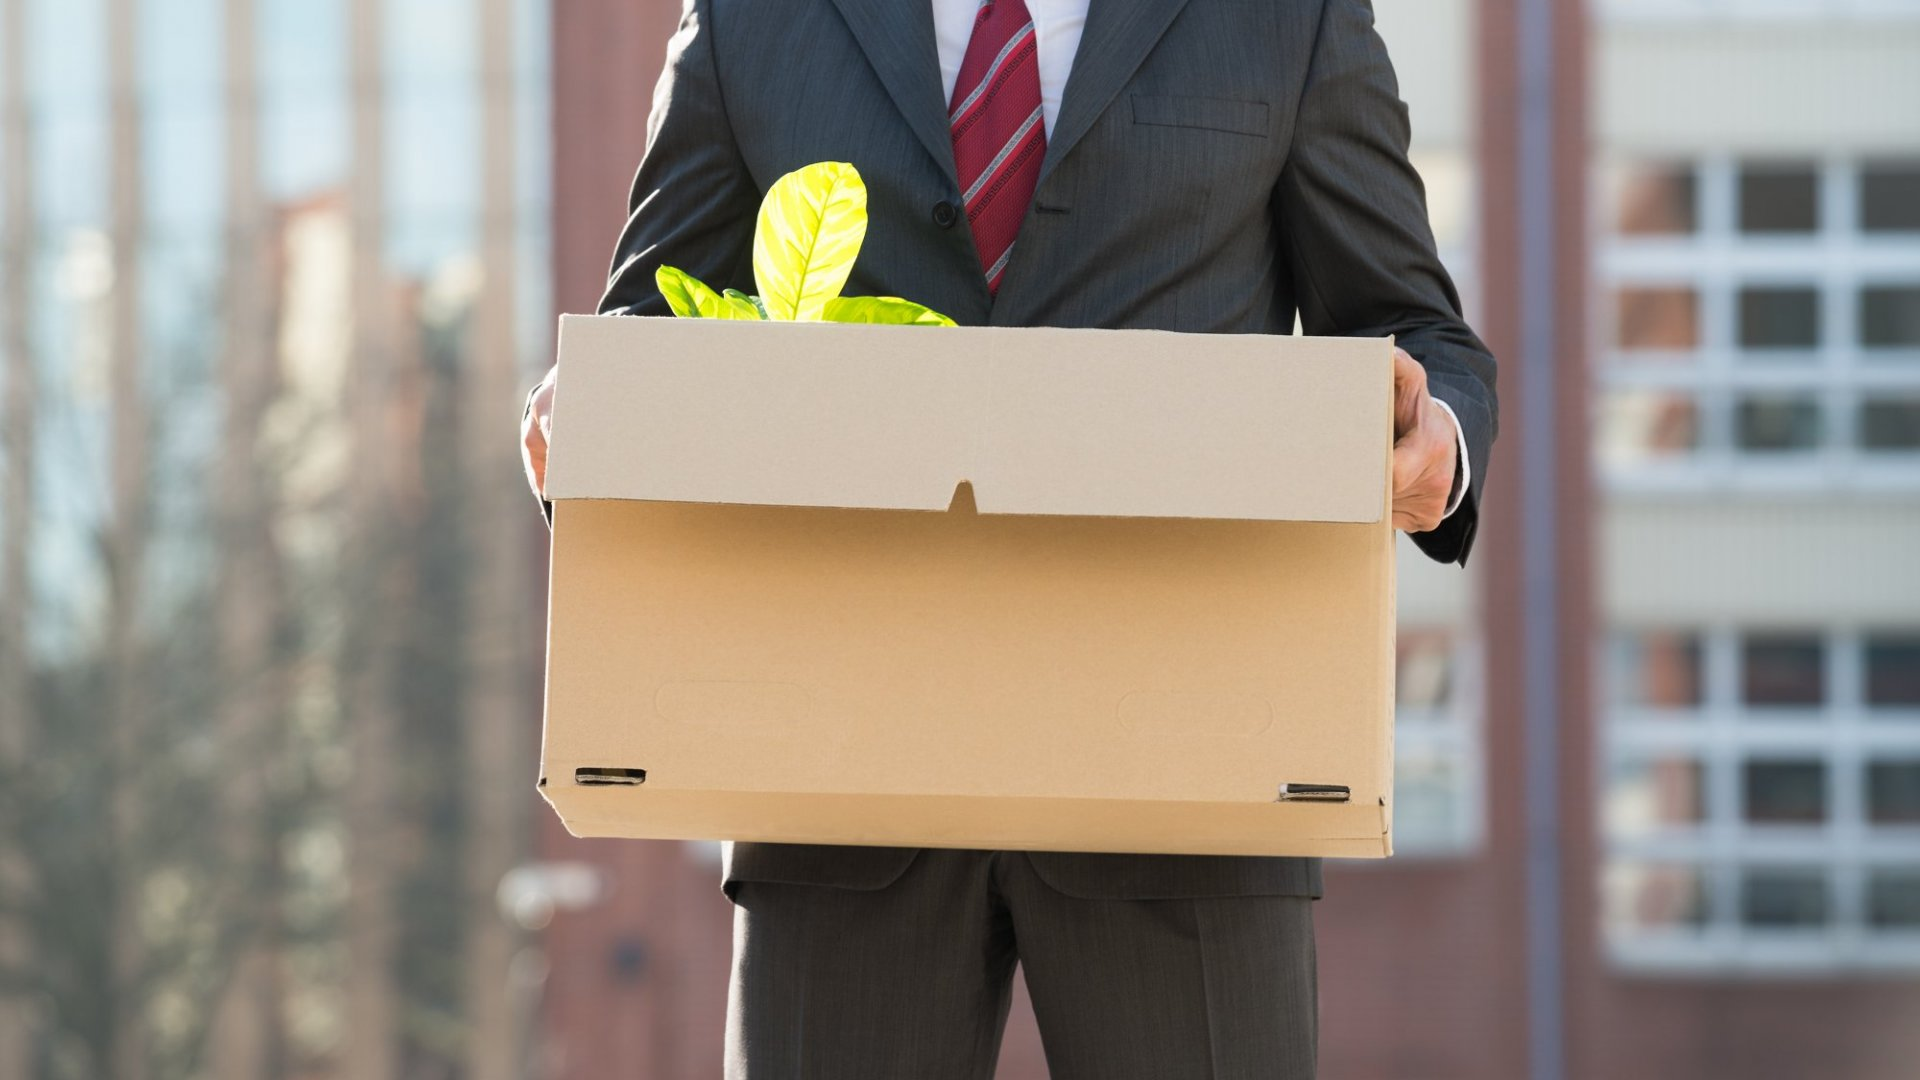 How to Make the Best of Your Worst Hiring Decisions